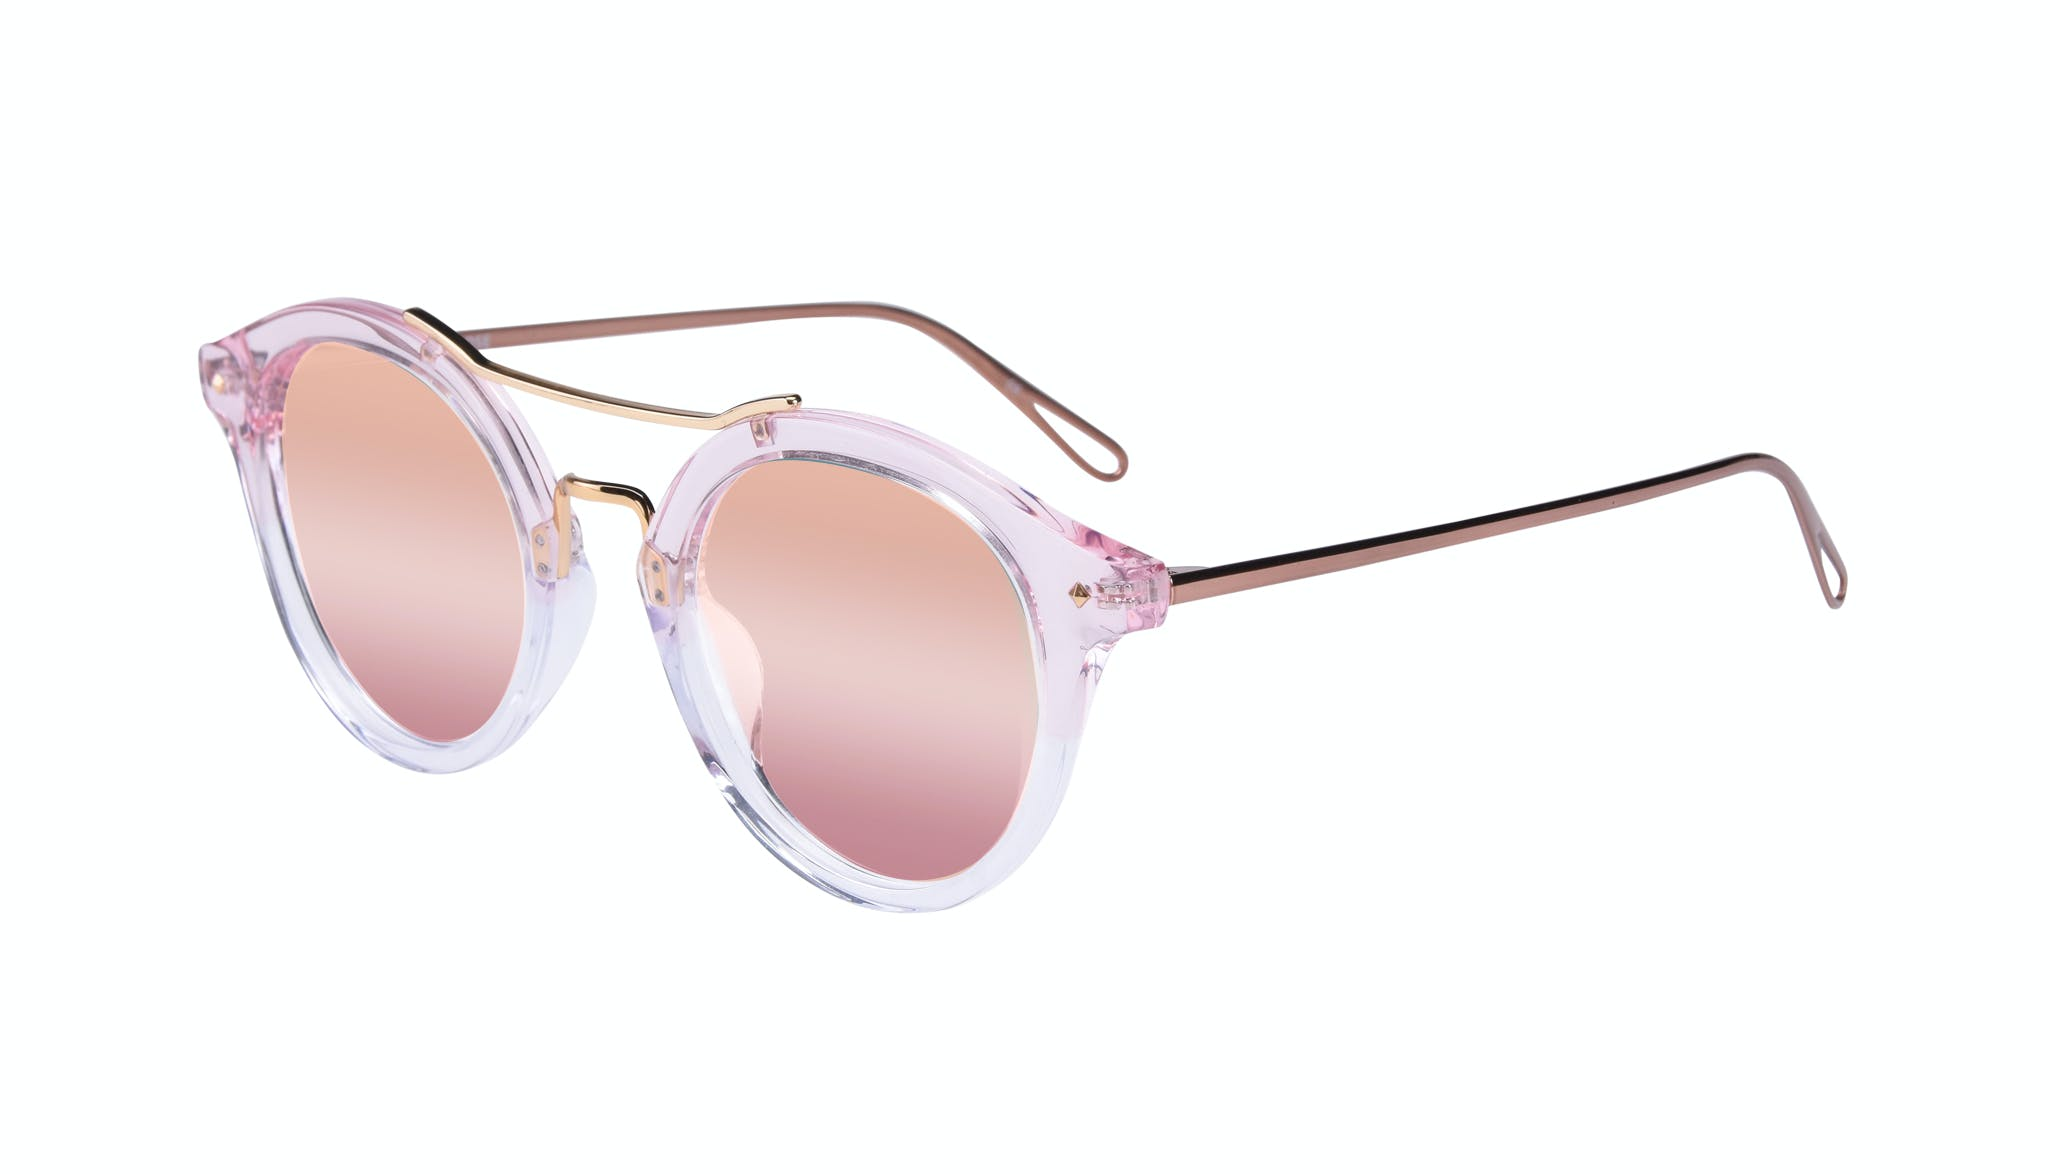 Affordable Fashion Glasses Round Sunglasses Women Infinite Rose Tilt